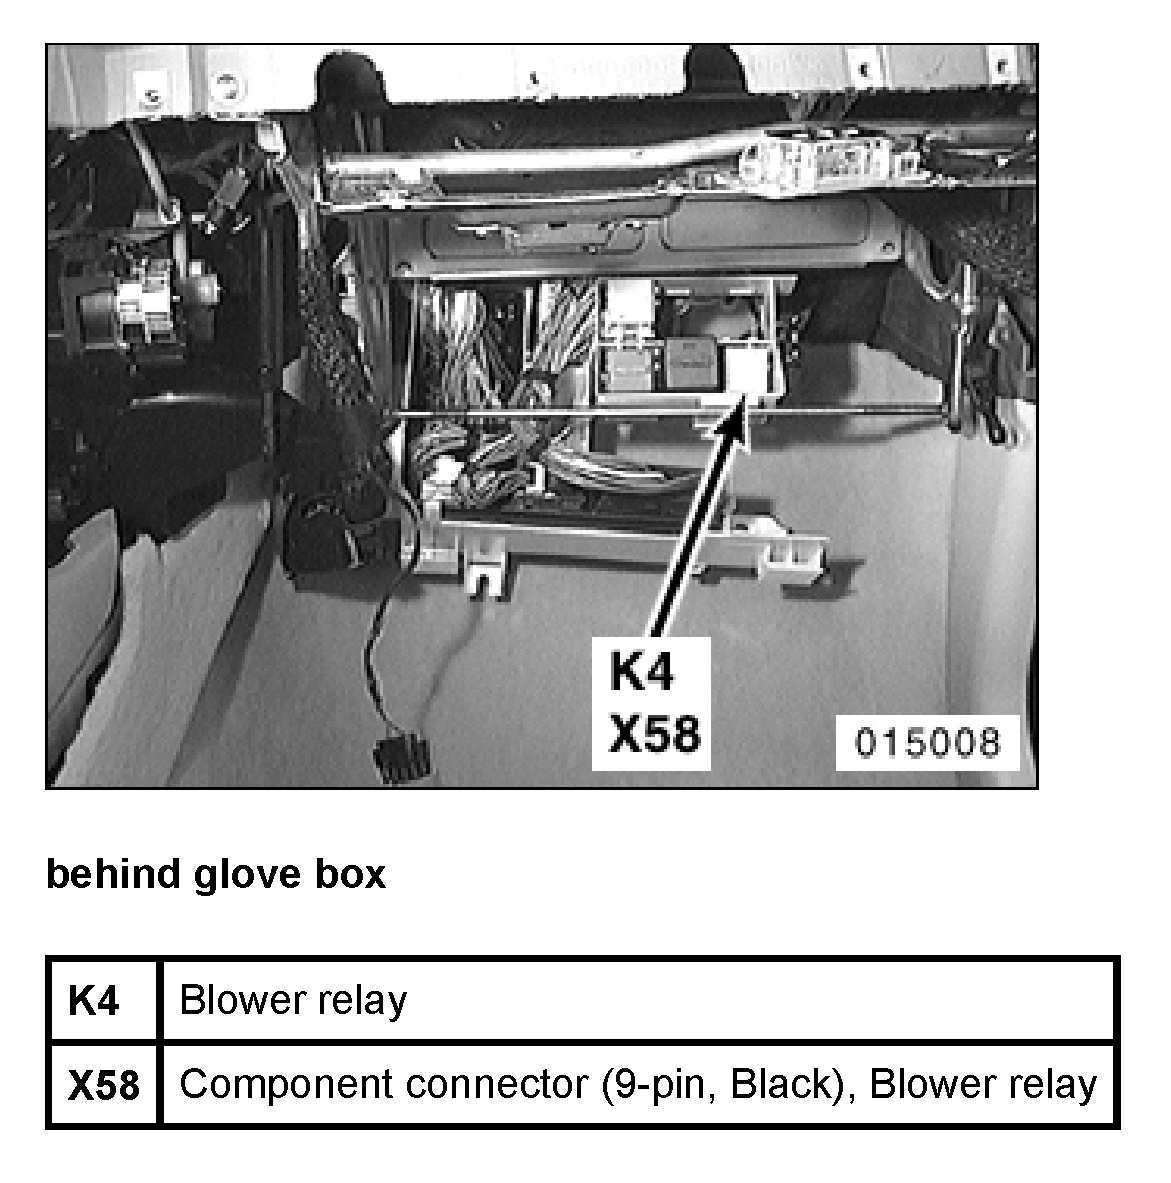 Picture Amperage Description Of Every Single Fuse Relay In The E46 Trunk Box Click Image For Larger Version Name 2011 05 22 145653 Blower Views